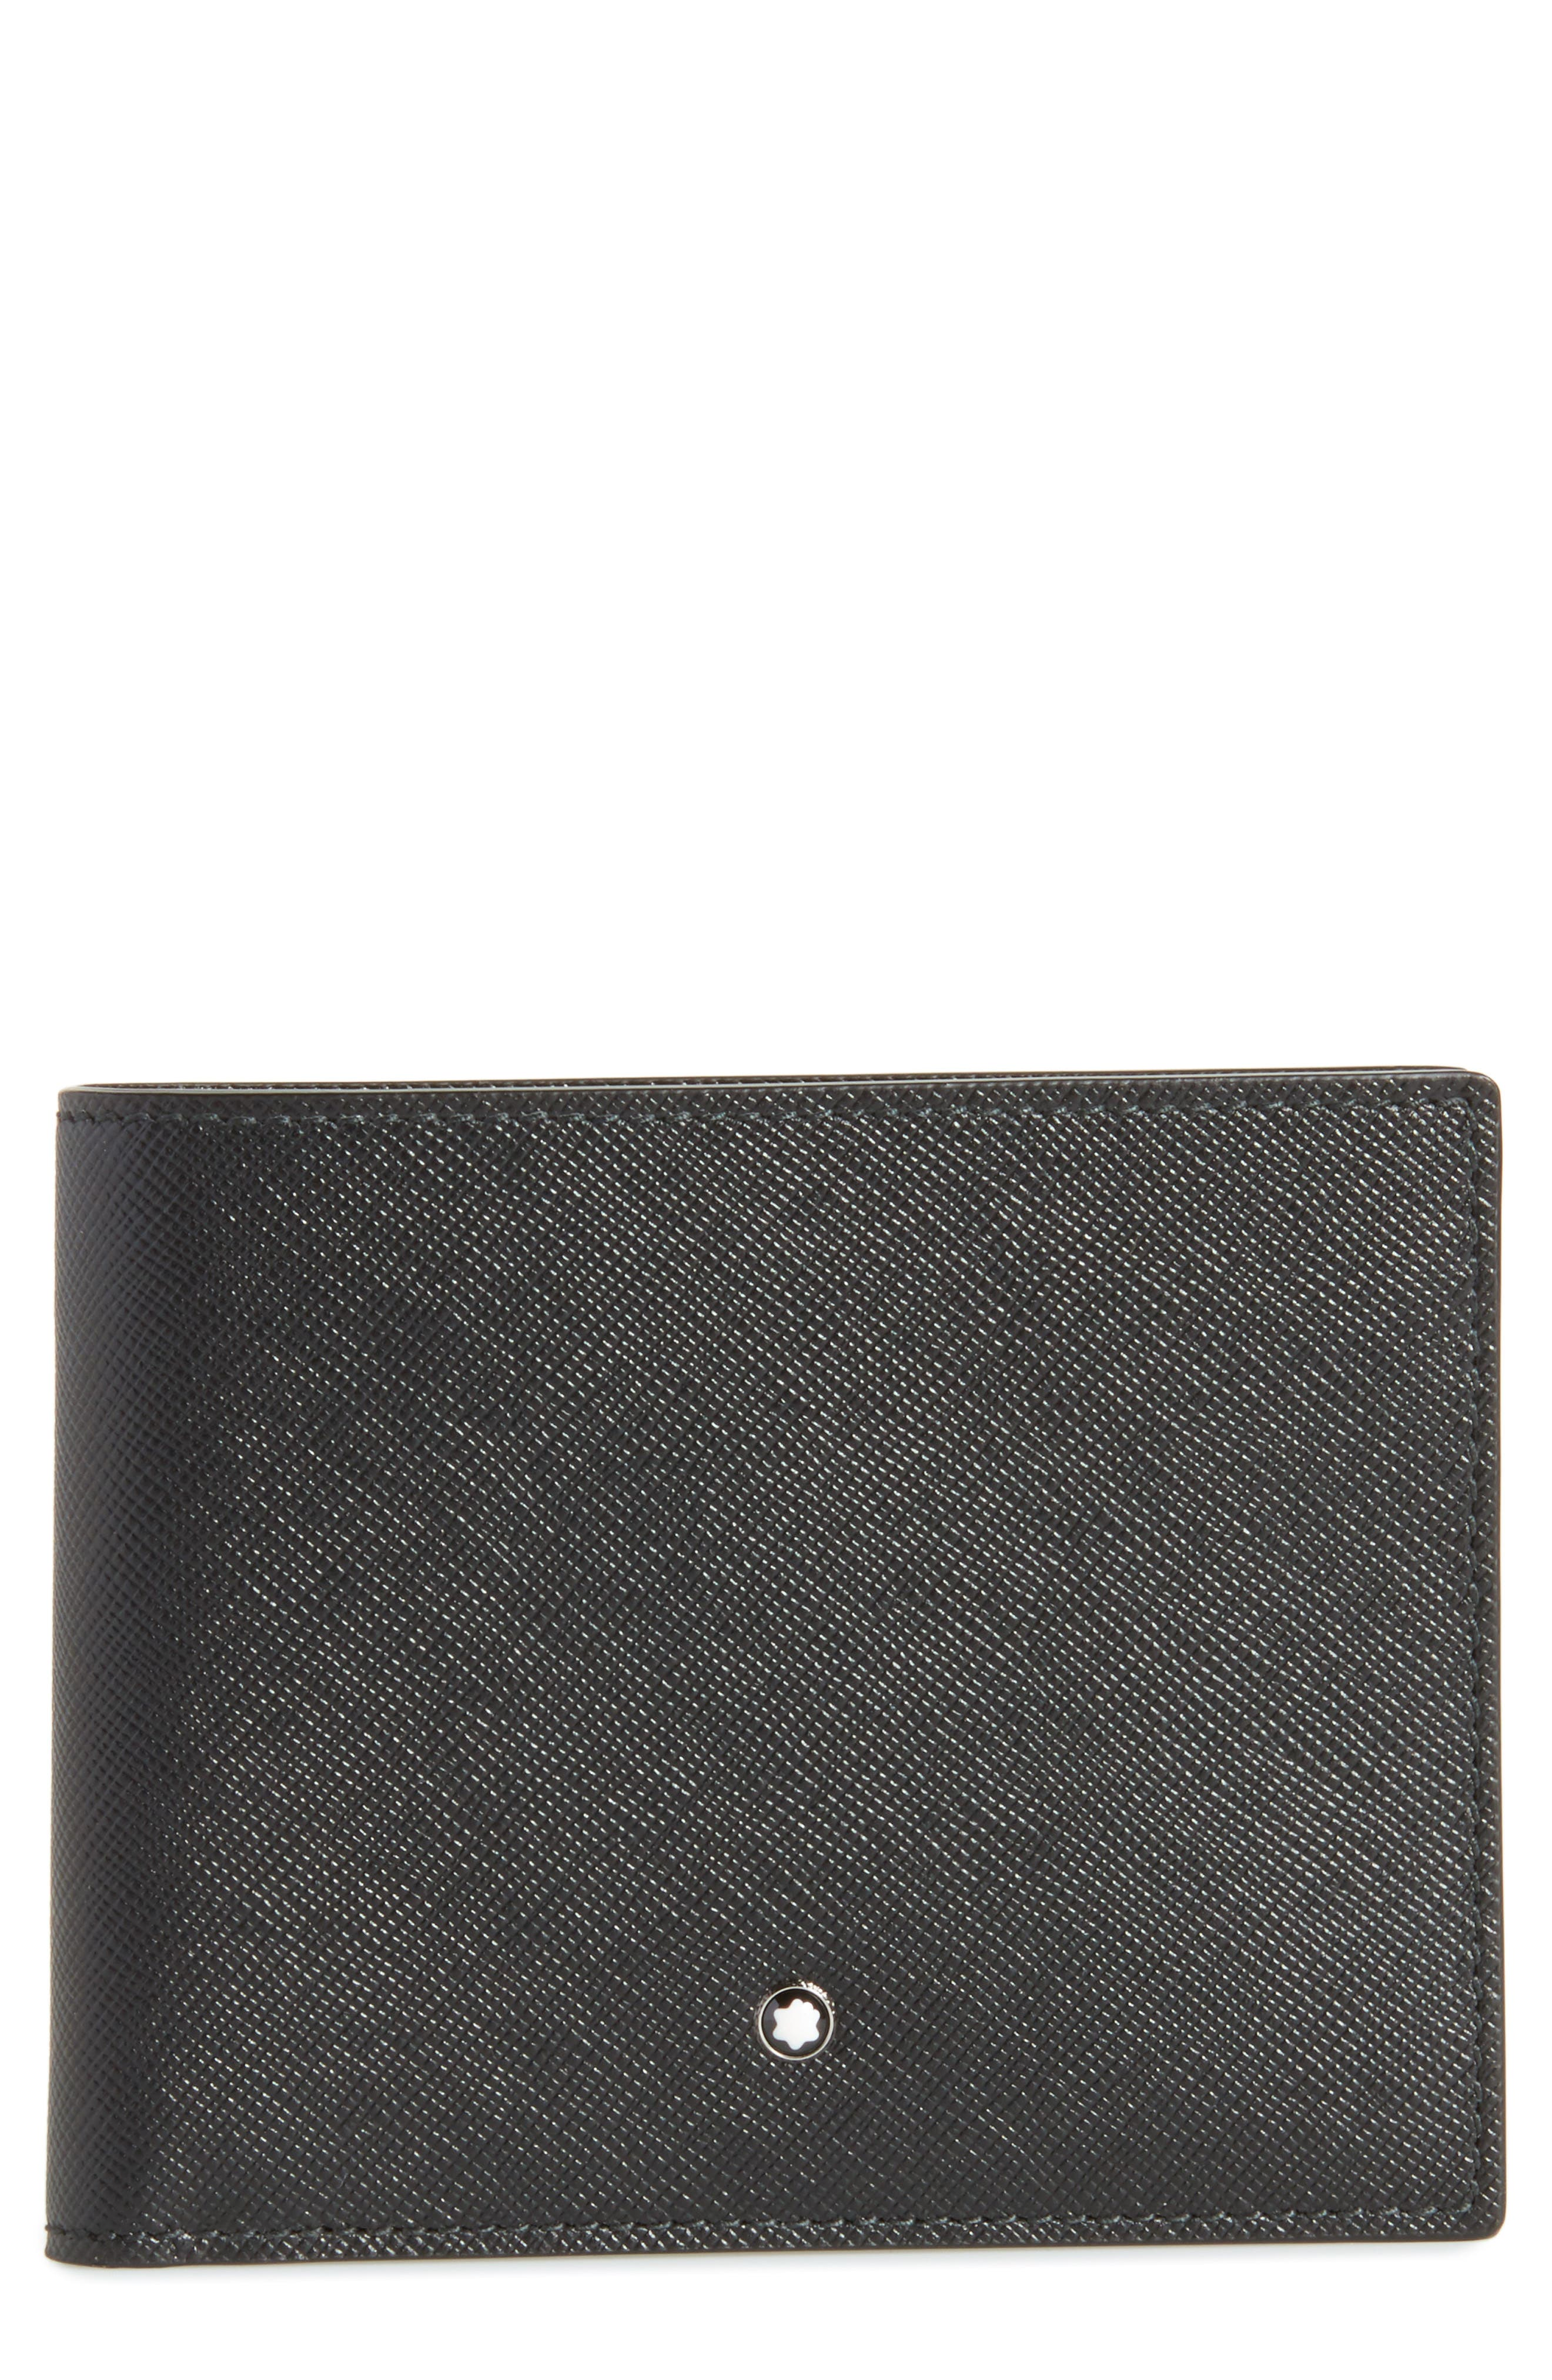 Sartorial Leather Bifold Wallet,                         Main,                         color,